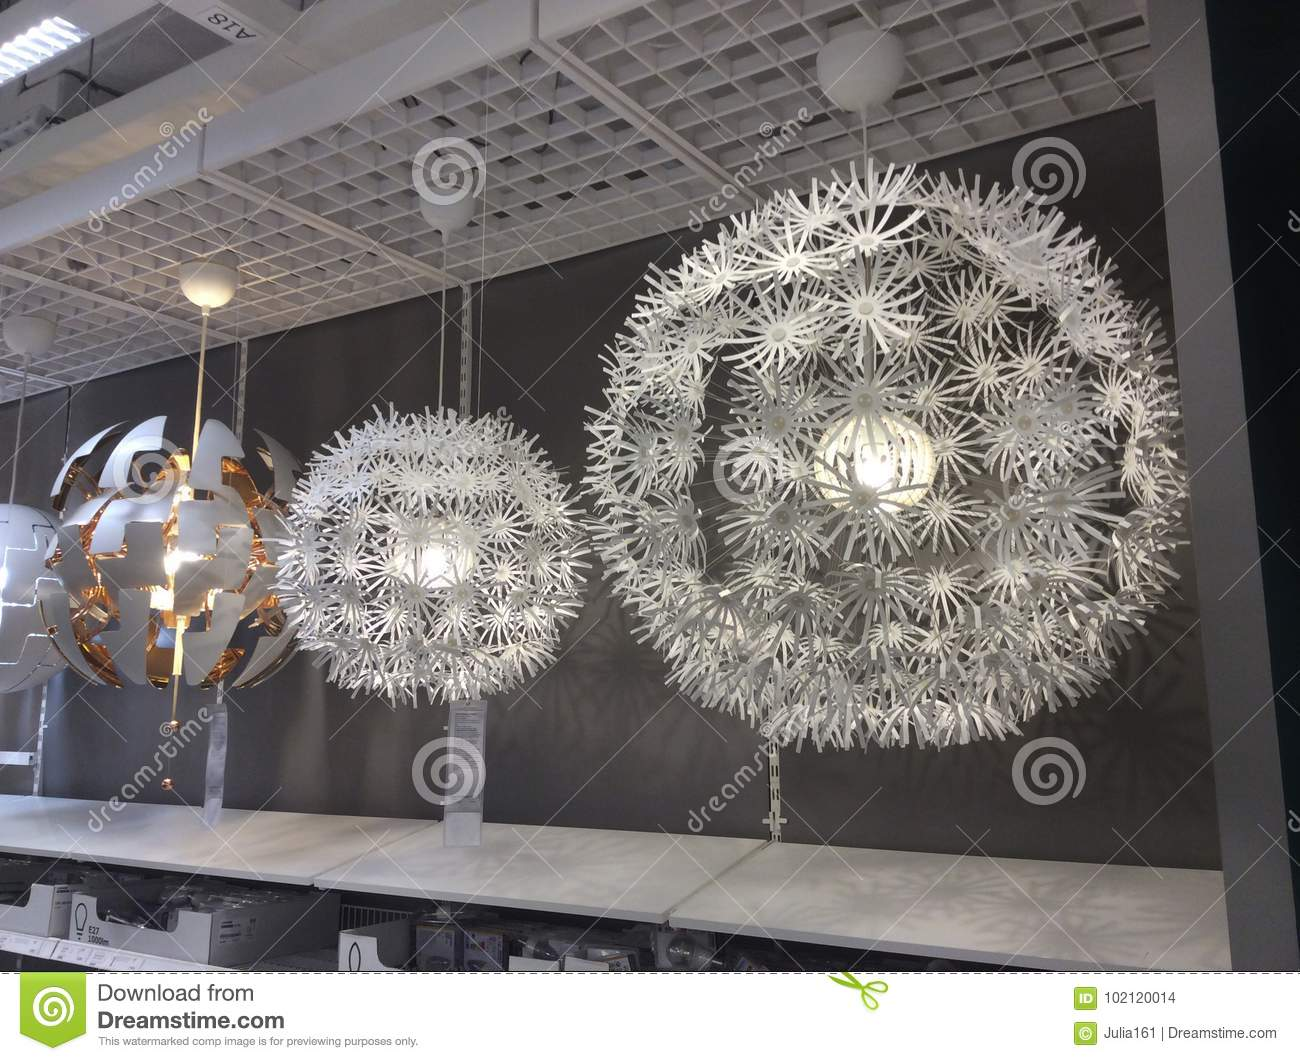 Chandeliers in ikea shop editorial stock image image of chandeliers download chandeliers in ikea shop editorial stock image image of chandeliers 102120014 aloadofball Choice Image